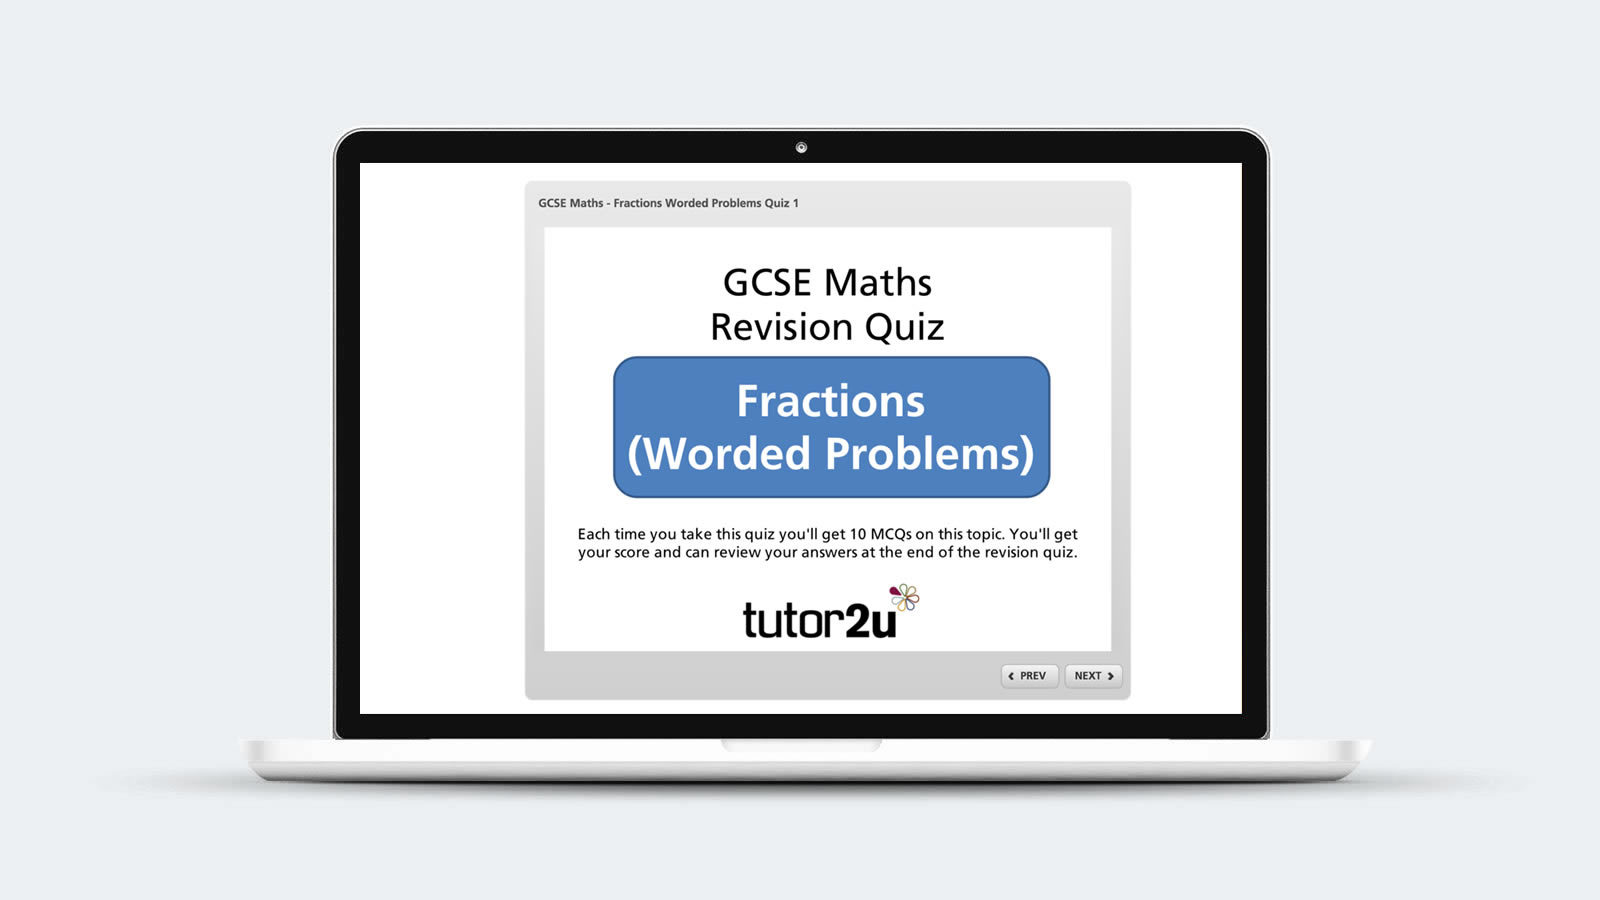 Try These Gcse Maths (91) Revision Mcqs On Fractions Worded Problems